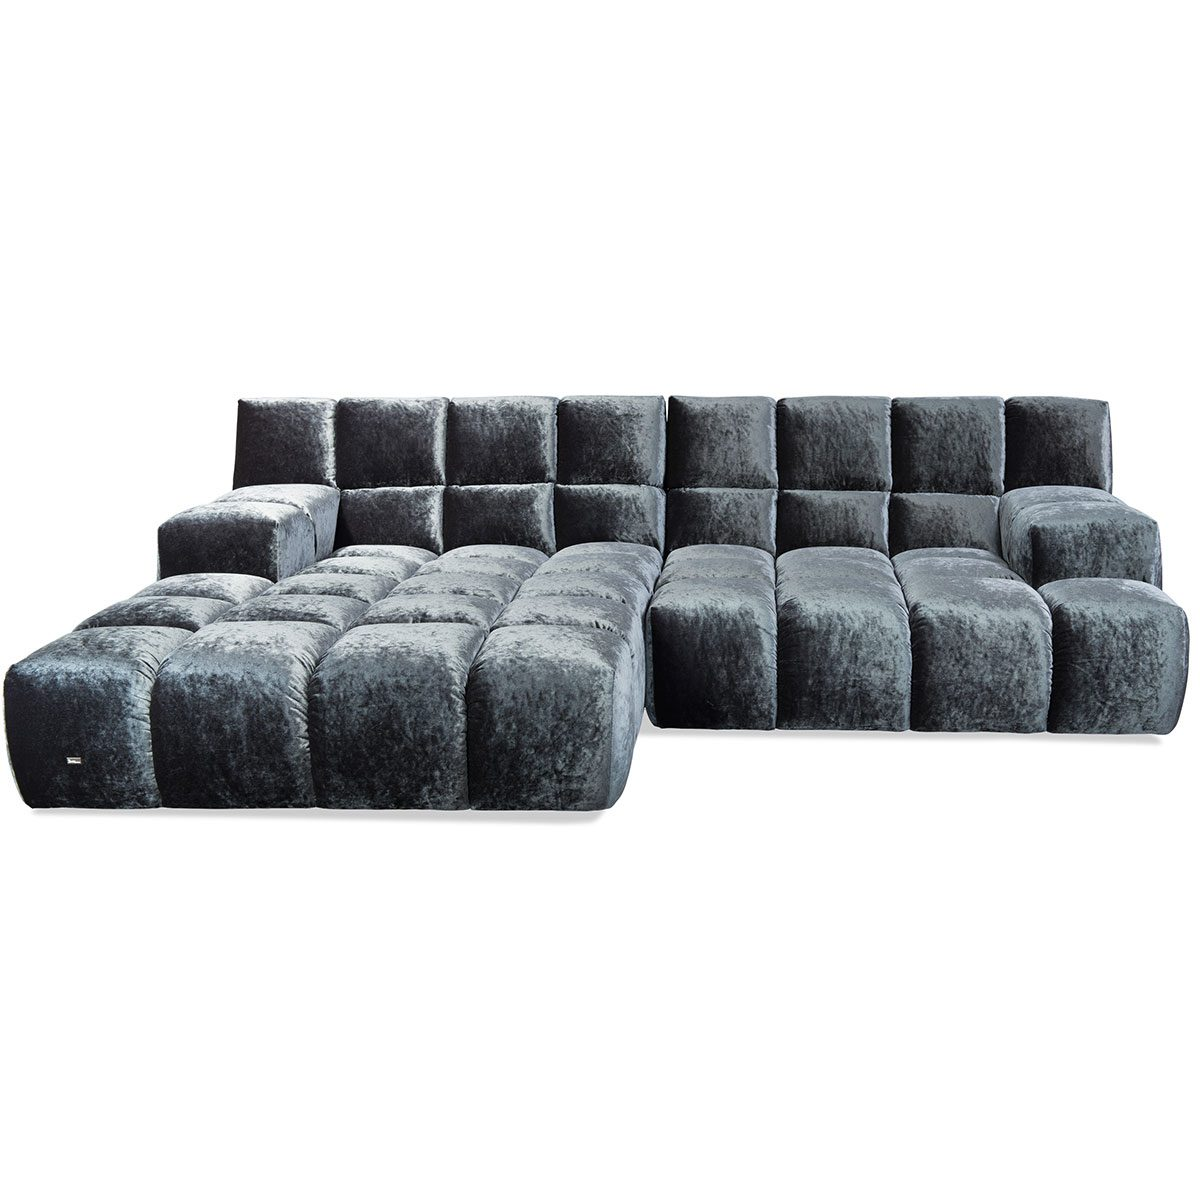 bretz ocean 7 udli ure 158 top angebote an ocean7 sofas. Black Bedroom Furniture Sets. Home Design Ideas